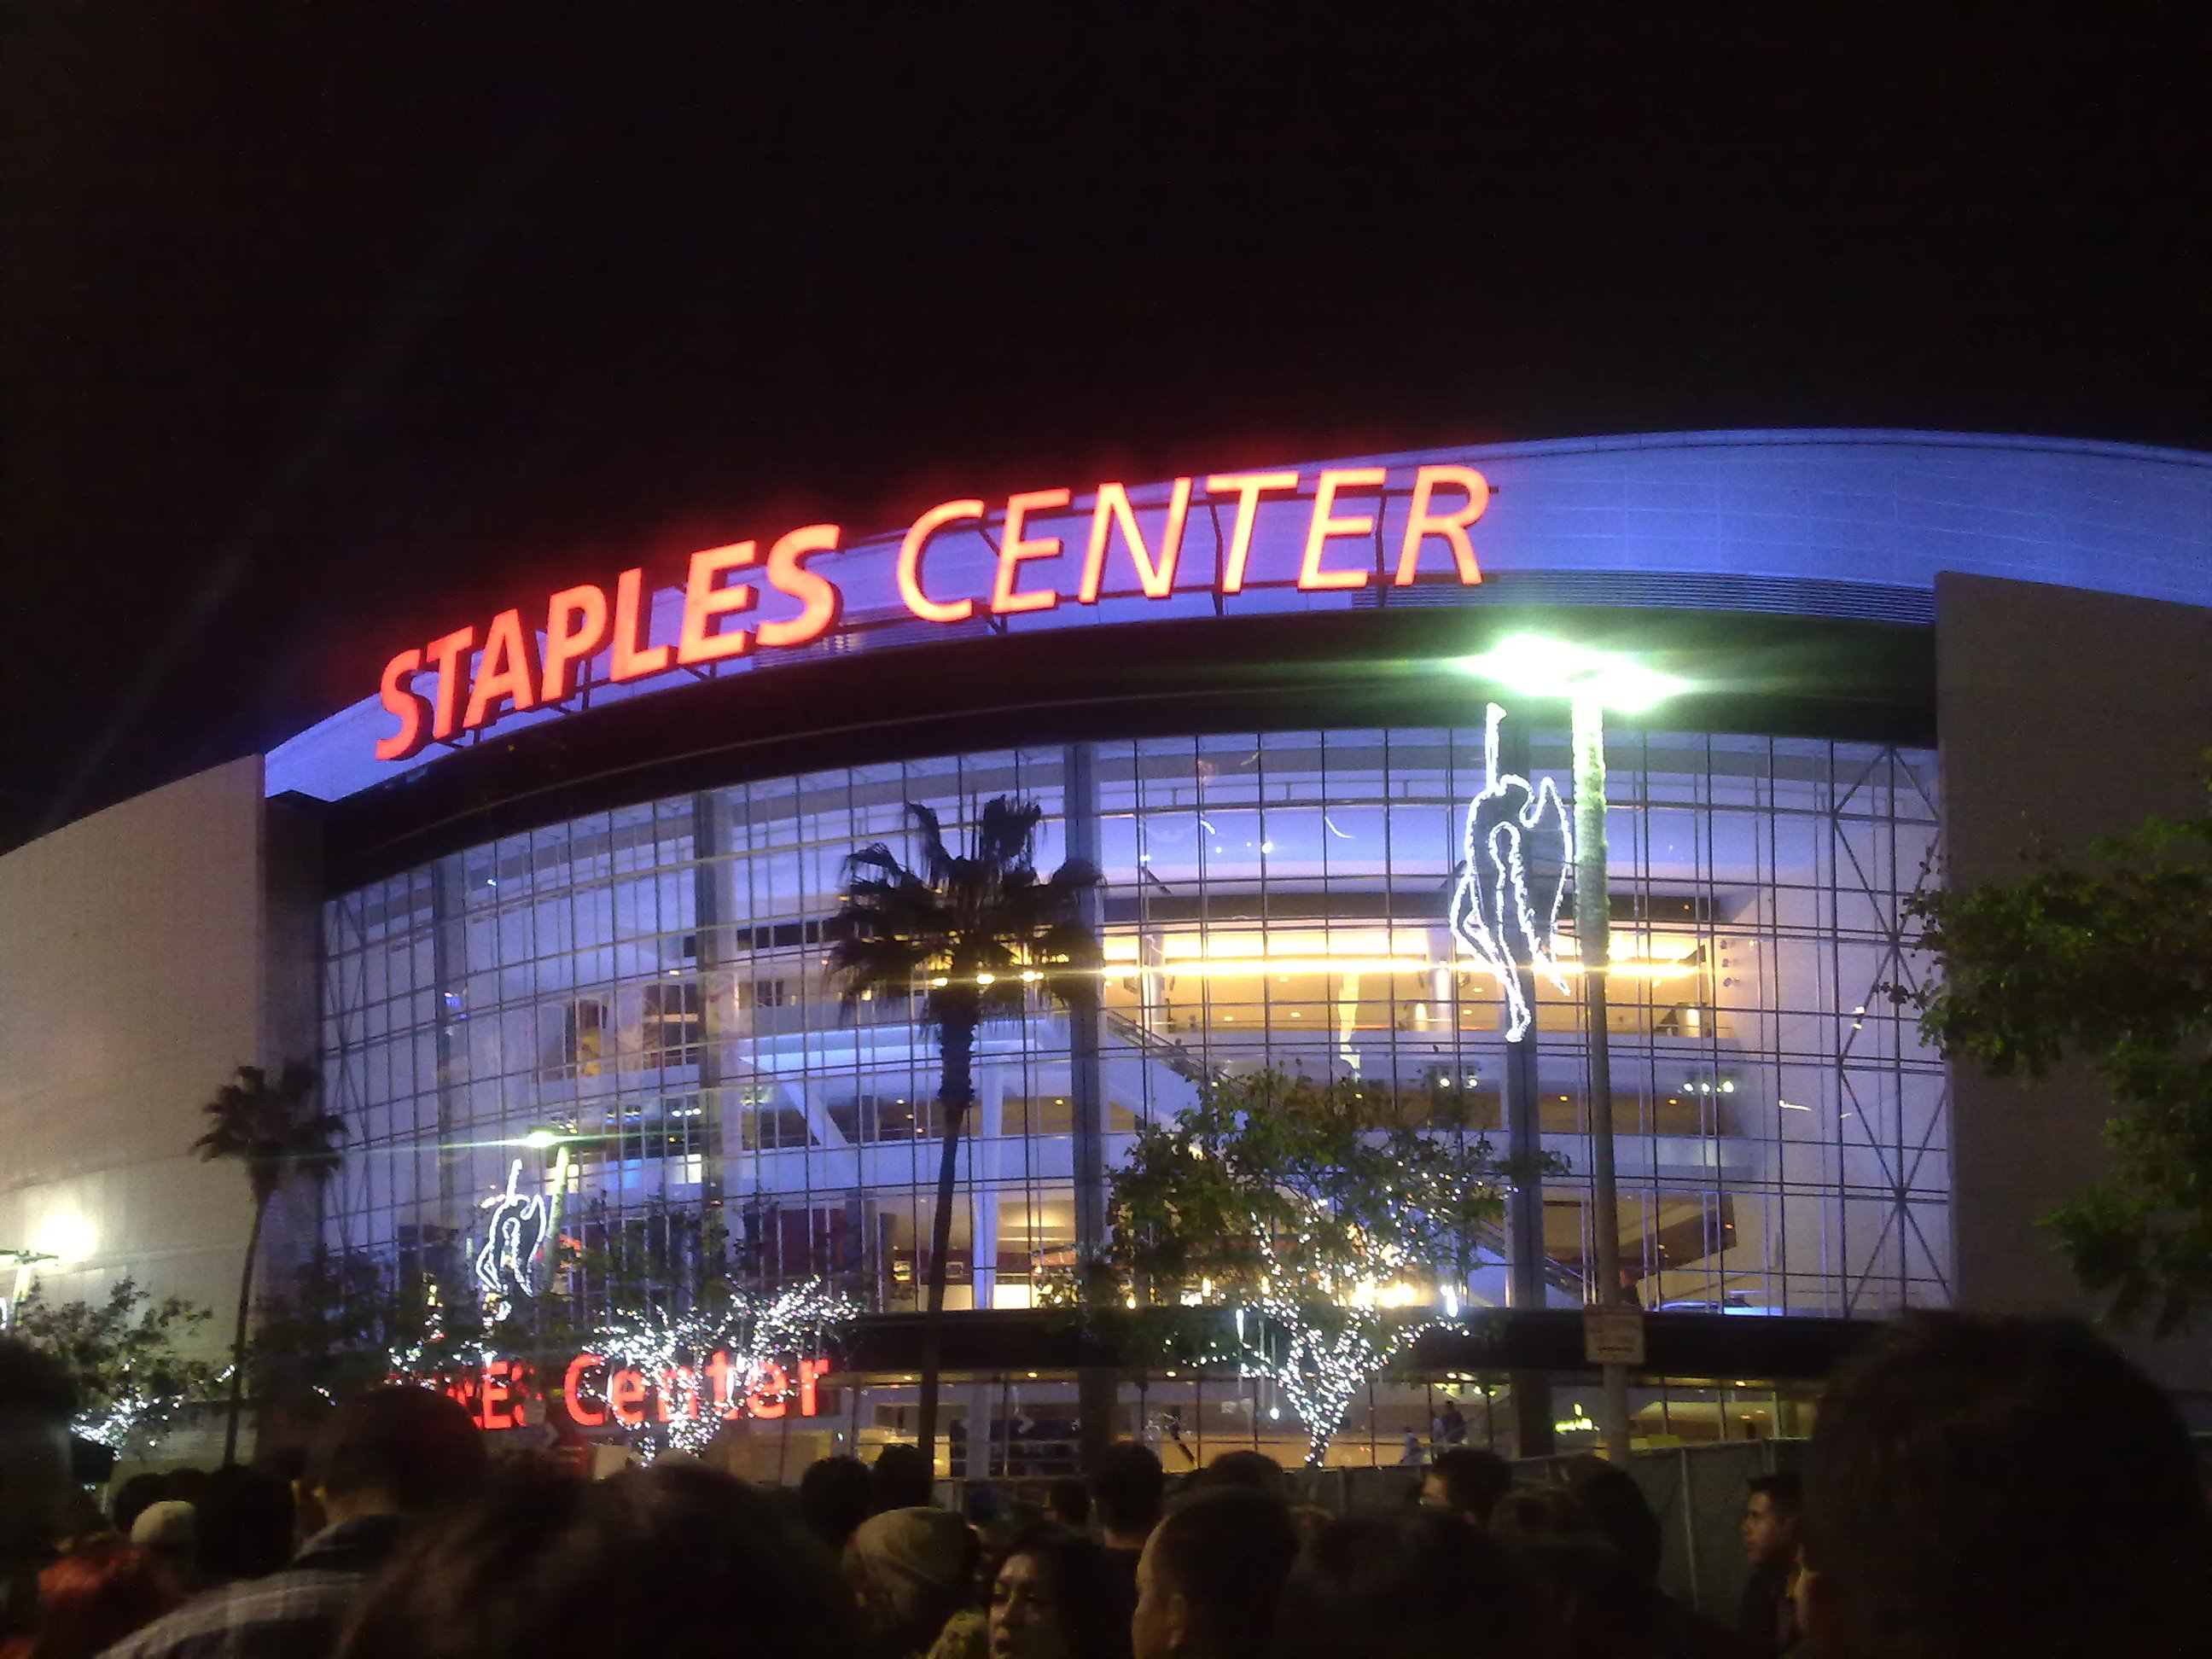 File:Staples Center Night.jpg